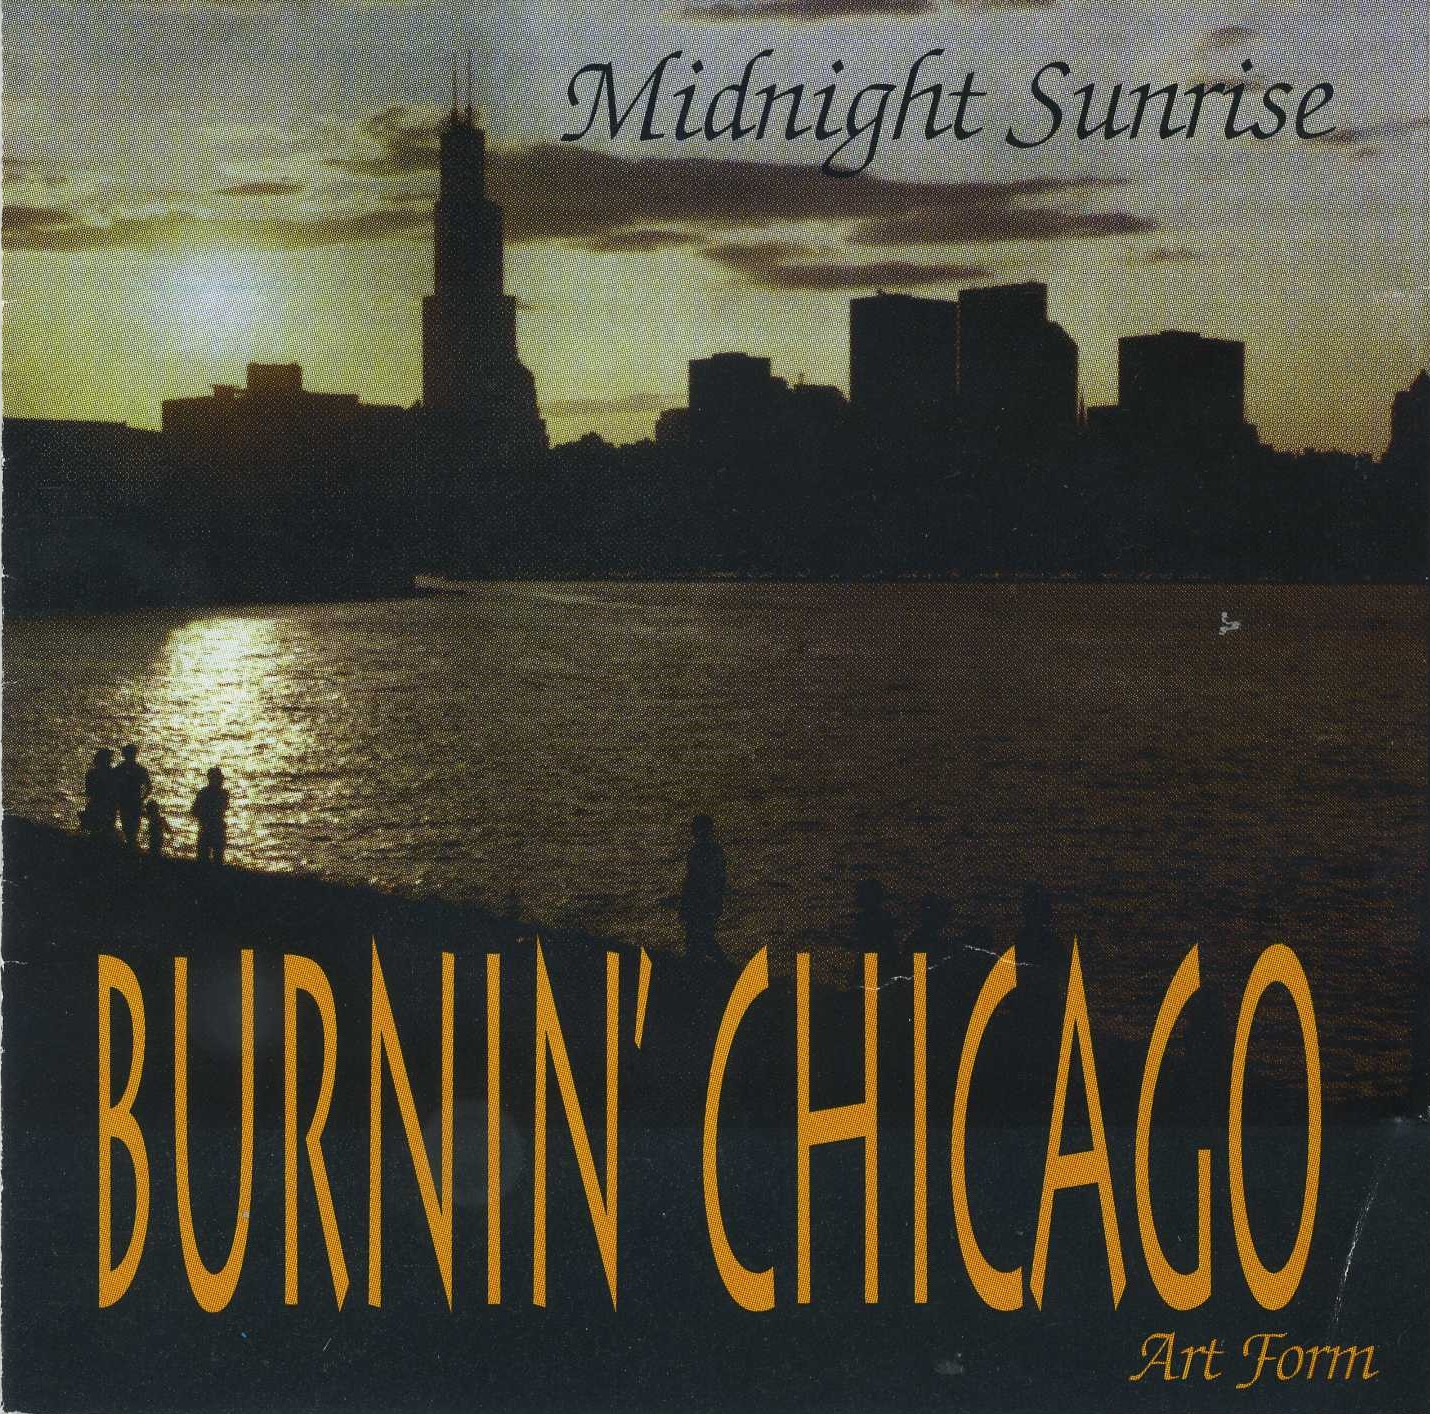 Burning Chicago